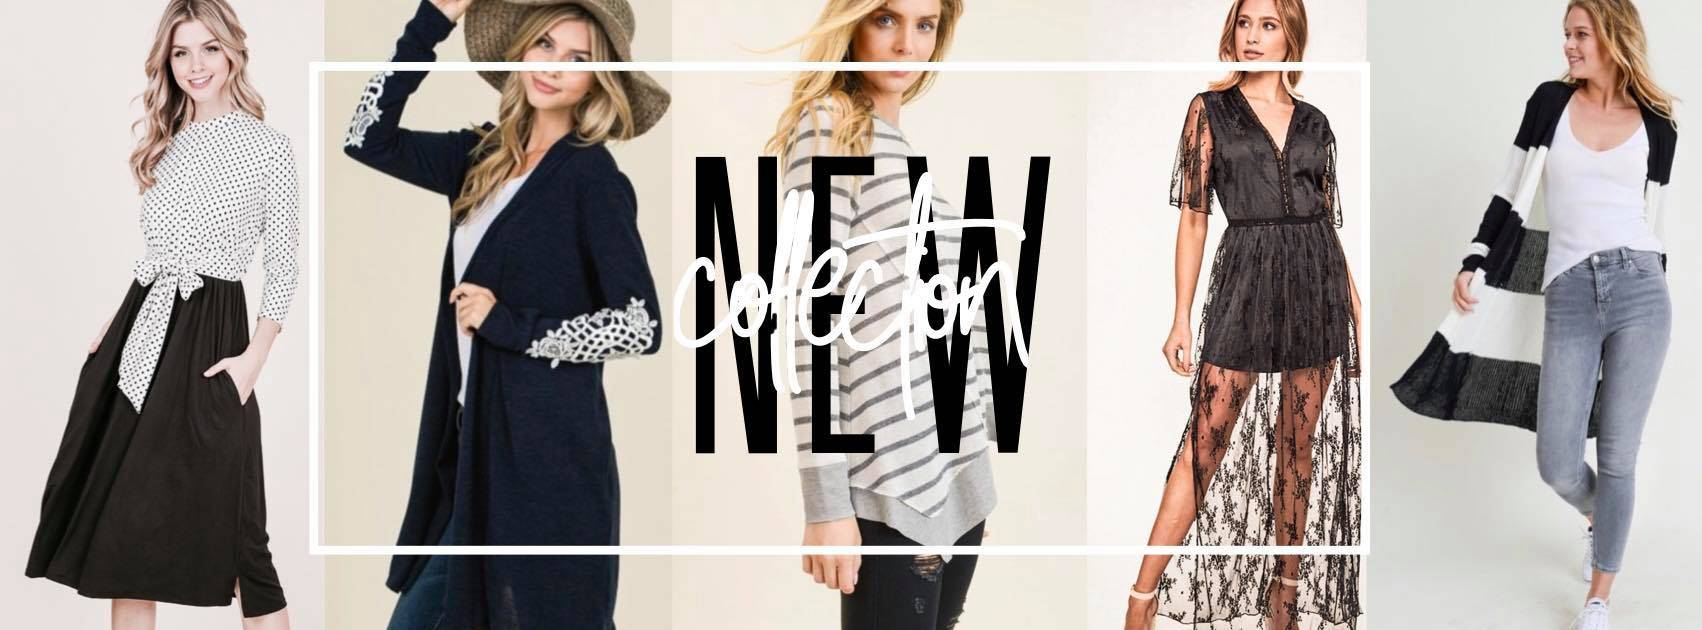 oak and pearl clothing co new collections of new arrivals